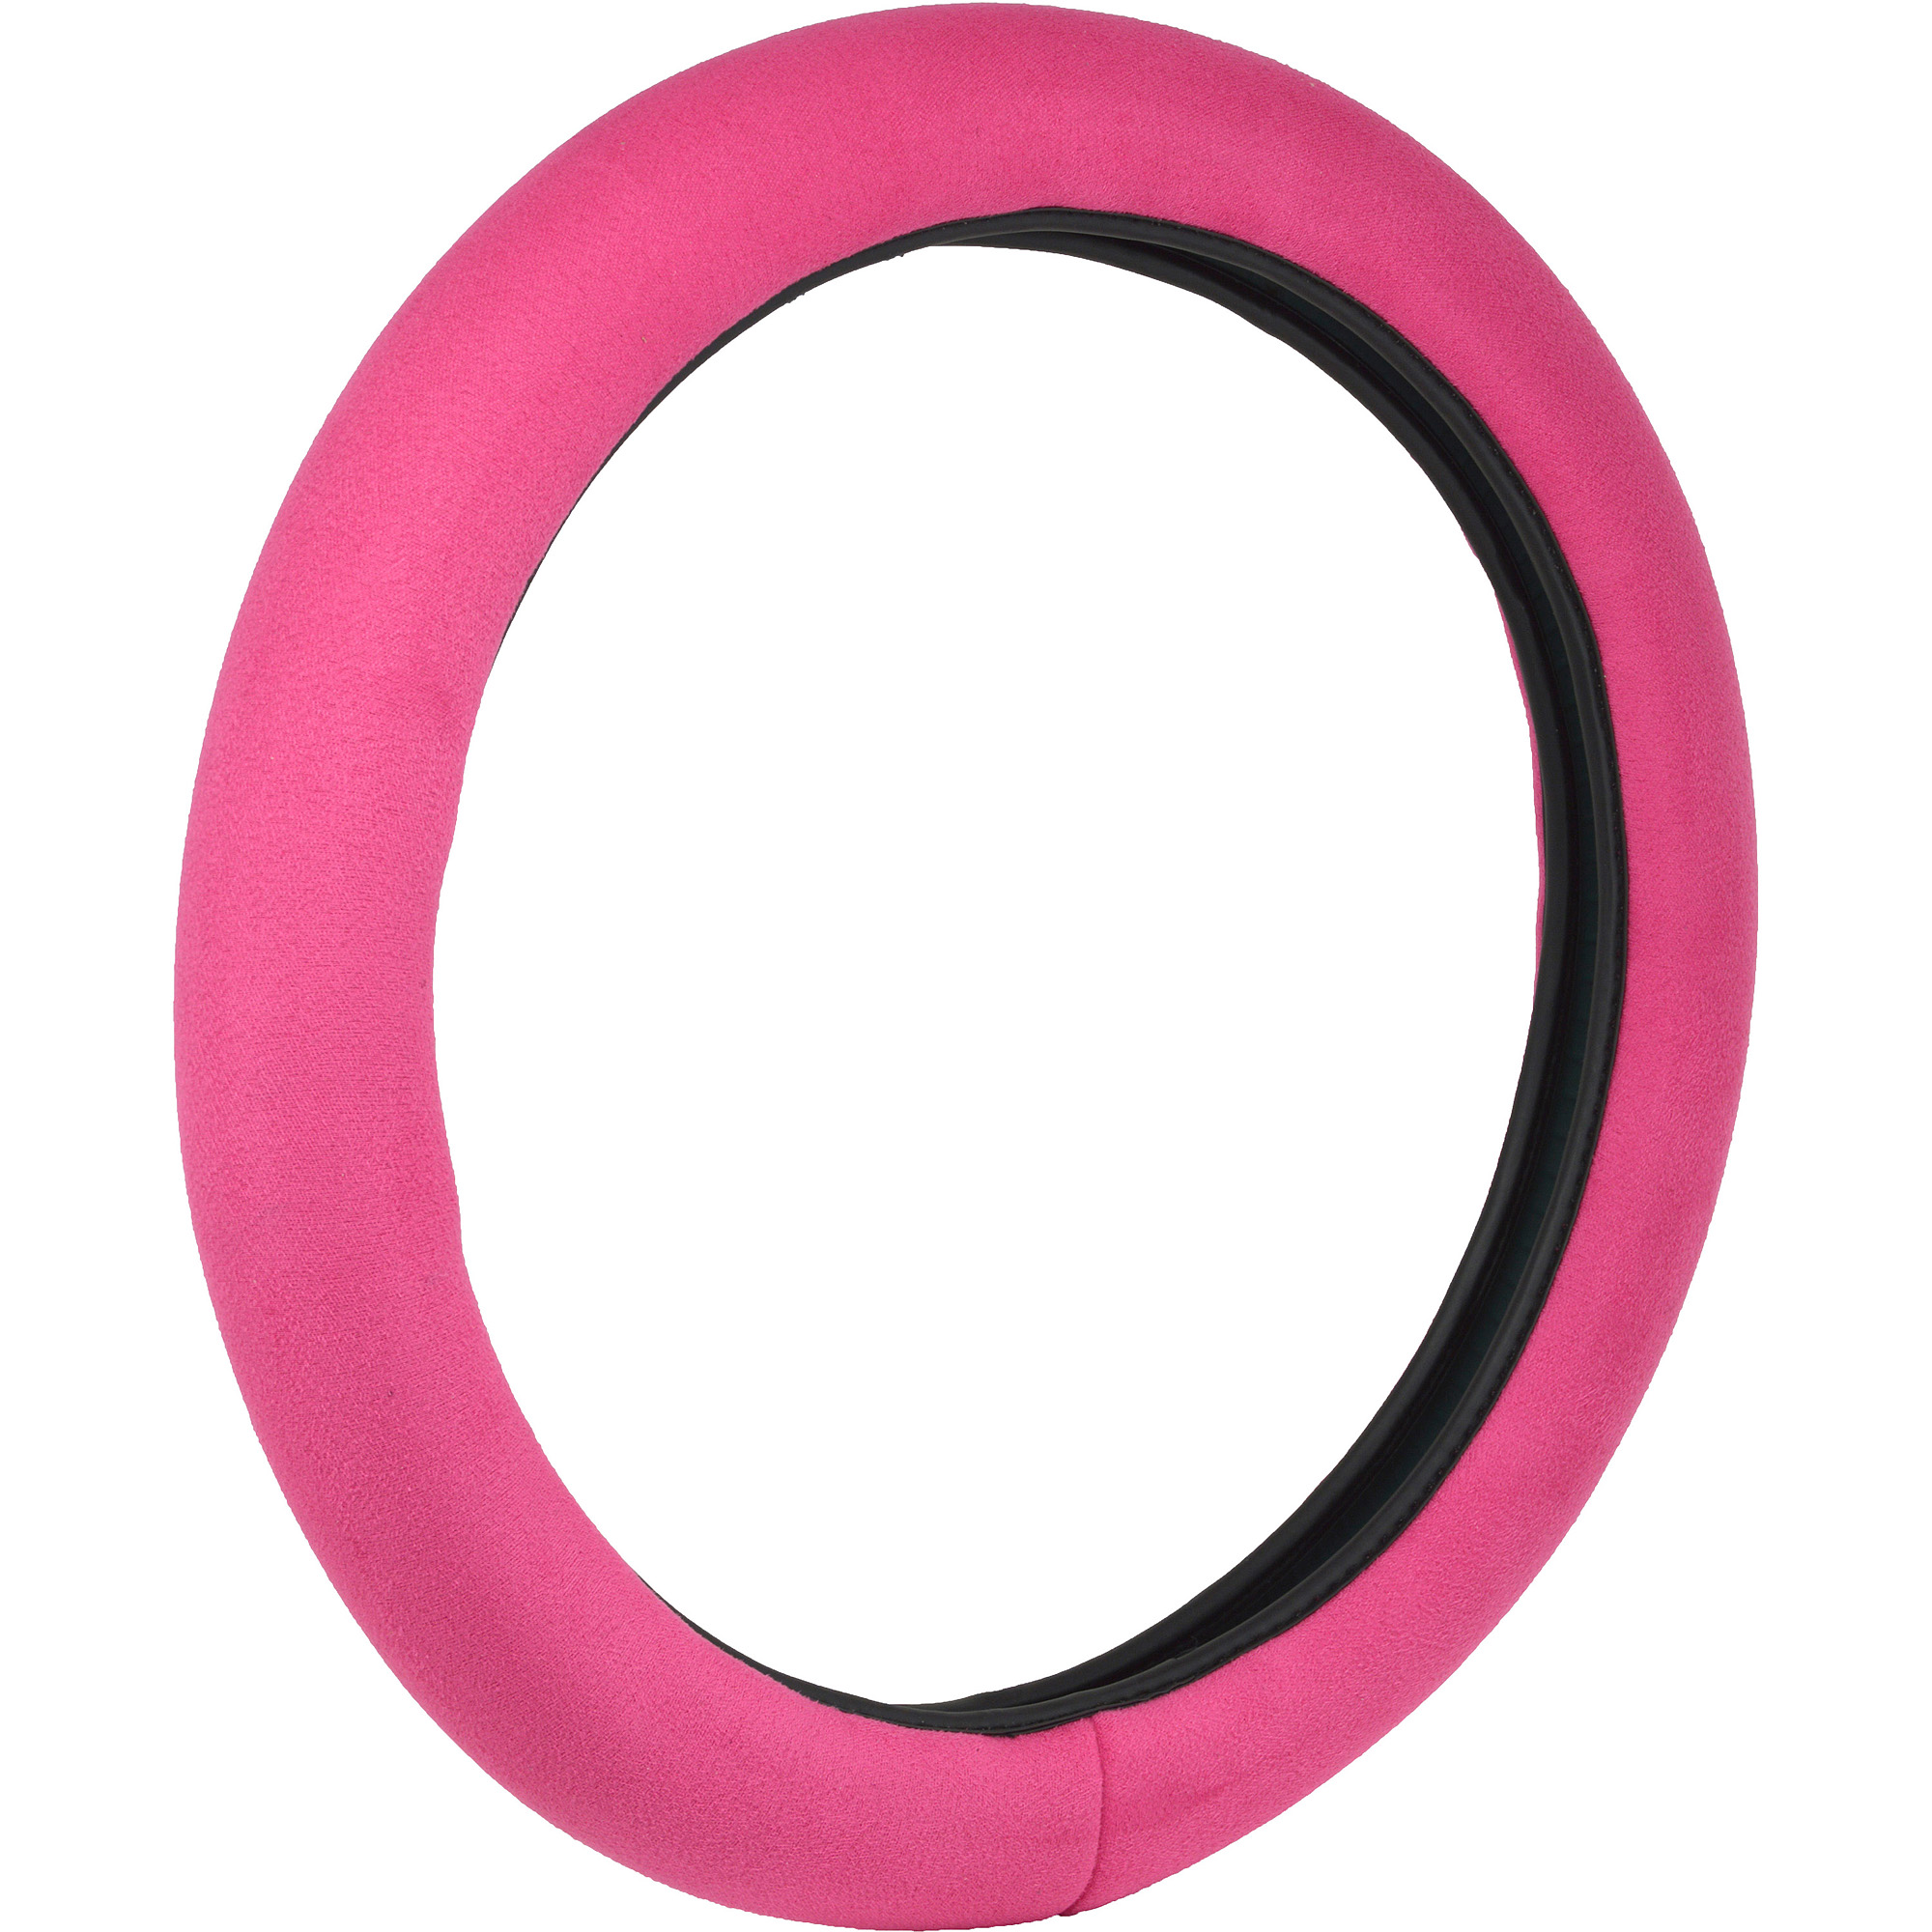 Bell Automotive Pink Stress Releiver Hyper-Flex Core Steering Wheel Cover